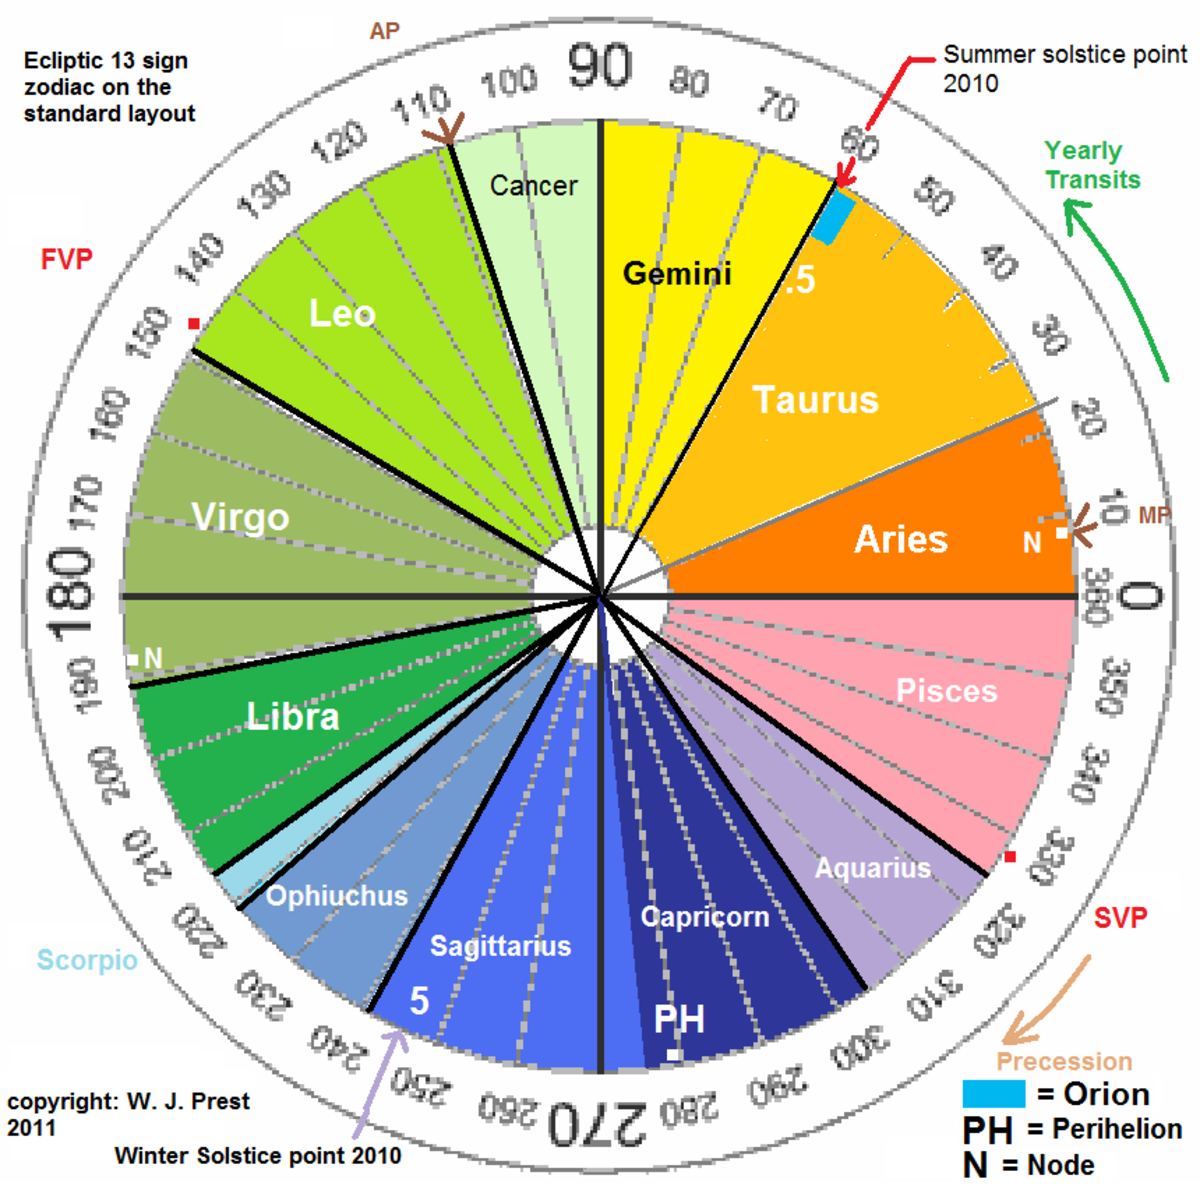 Study this map of the ecliptic zodiac. There are 13 signs and they are not equal in size. Some are actually quite small and others large. The 30 degree convention is actually based on nothing according to a real sky analysis.